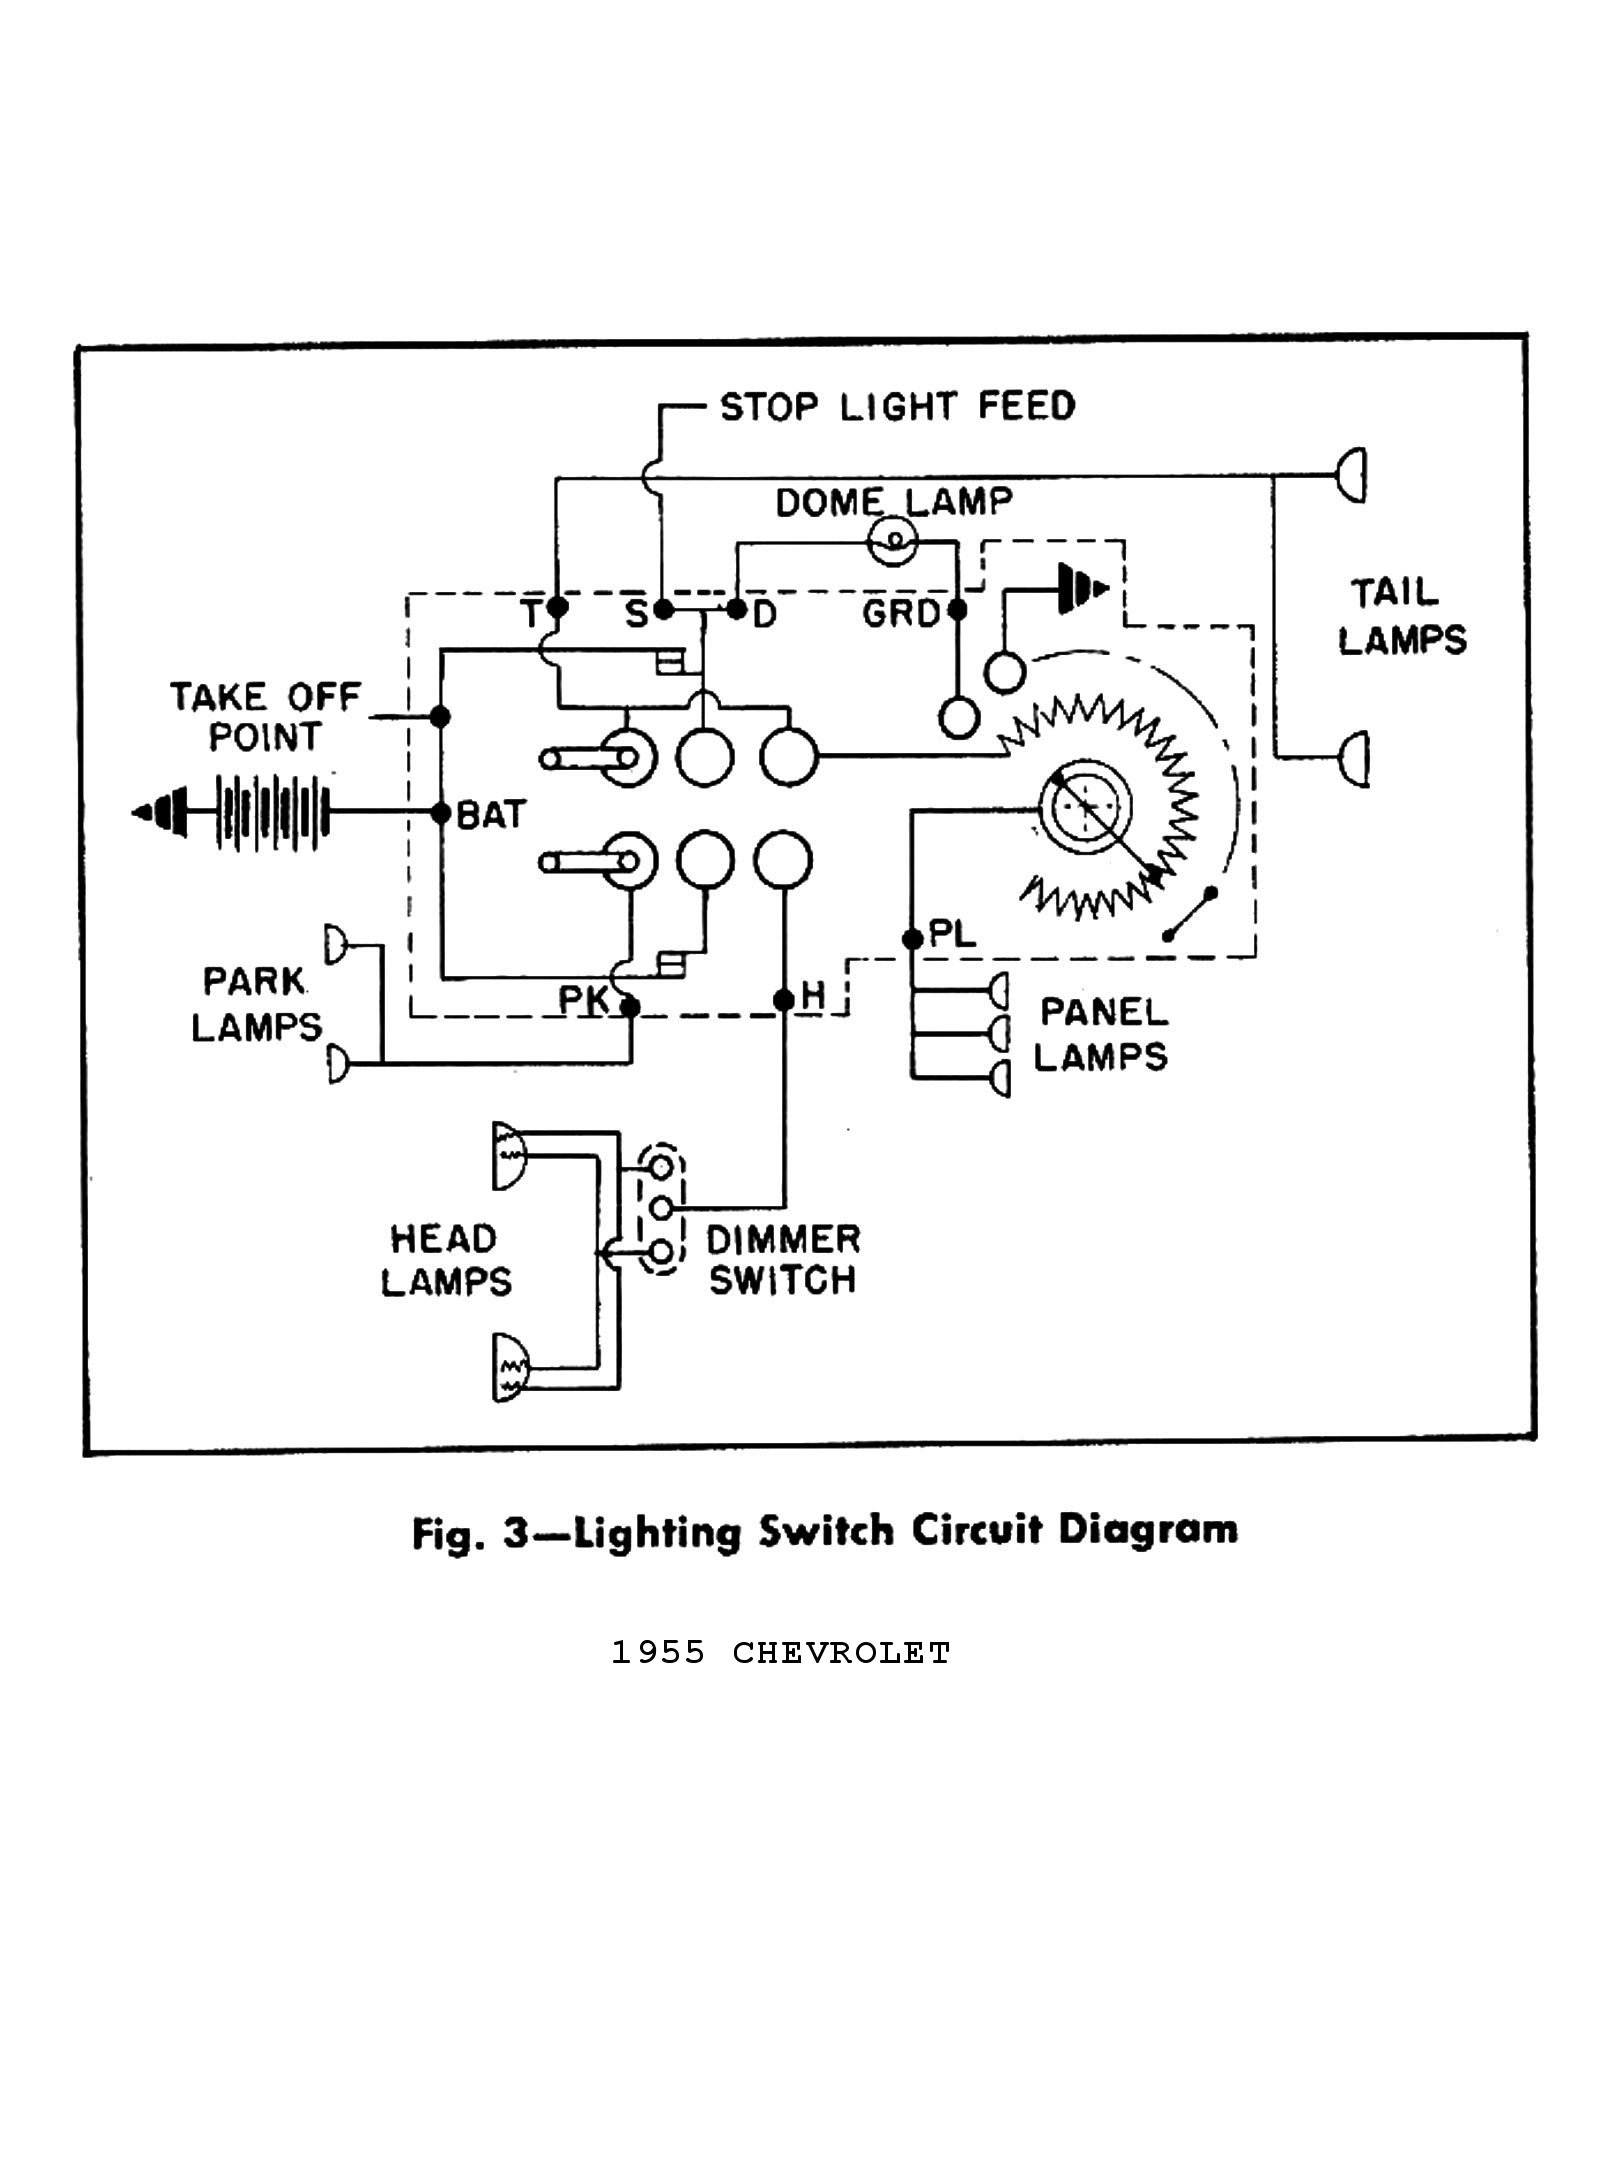 Advance Dimming Ballast Wiring Diagram Dimming Ballast Wiring Diagram Free Wiring Diagram